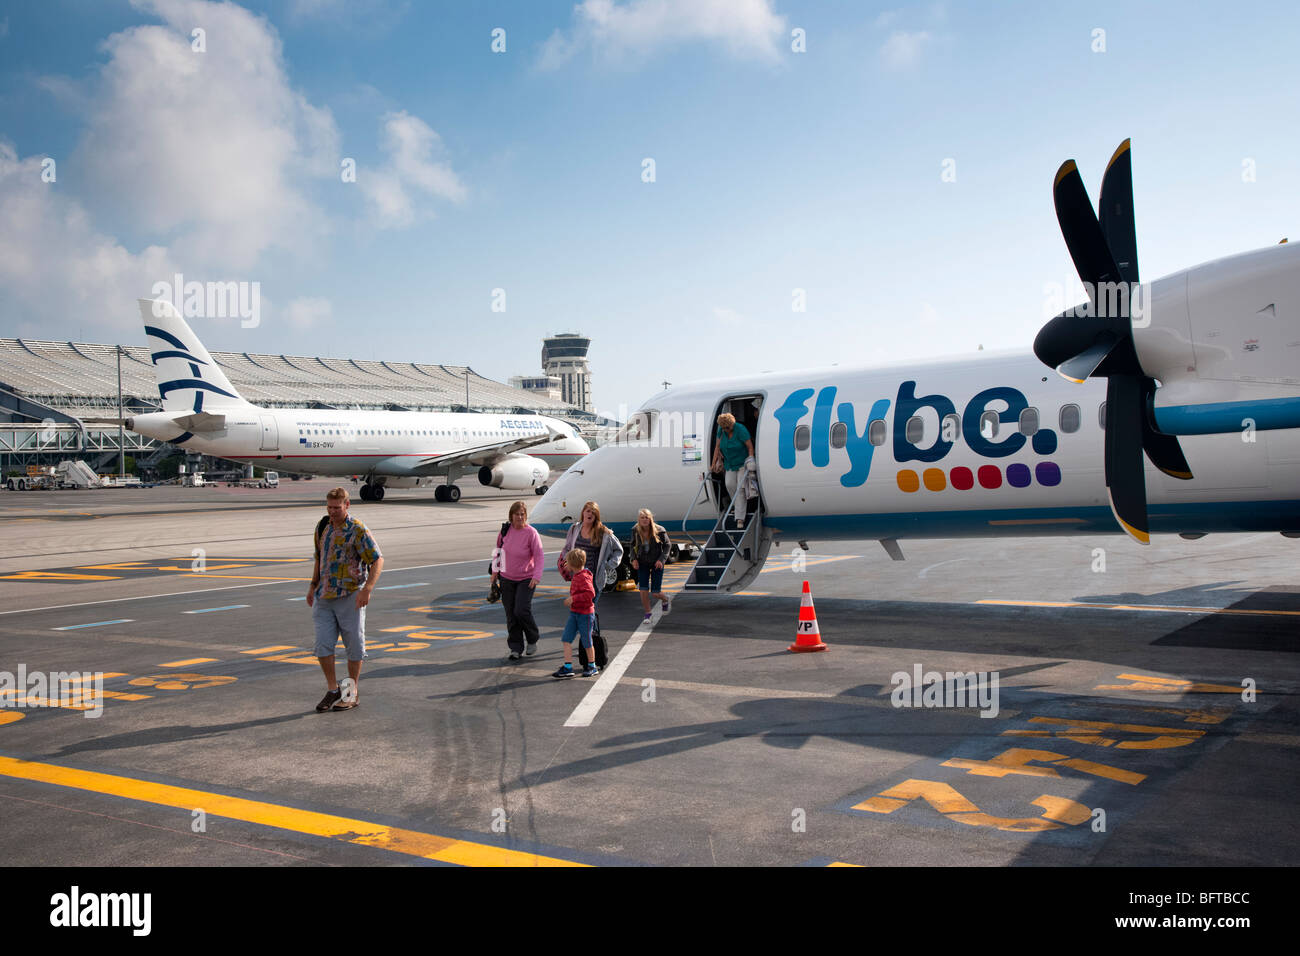 Flybe turboprop plane at Nice airport, Provence, France - Stock Image